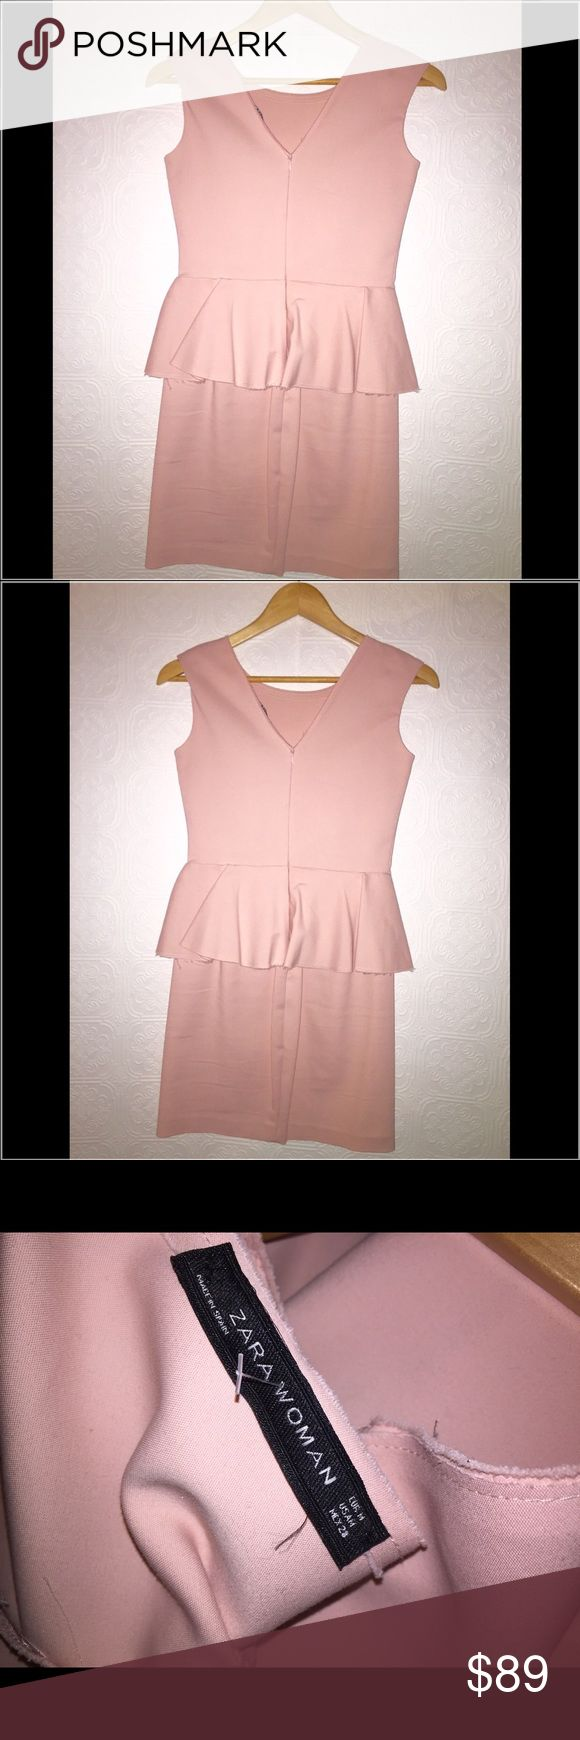 🎉FLASHSALE ZARA Woman NWOT awesome blush pink Beautifully made Zara dress. Side zipper  see tag pic for material. Absolutely beautiful❤️❤️❤️❗️ Final reduction✔️ Zara Dresses Midi